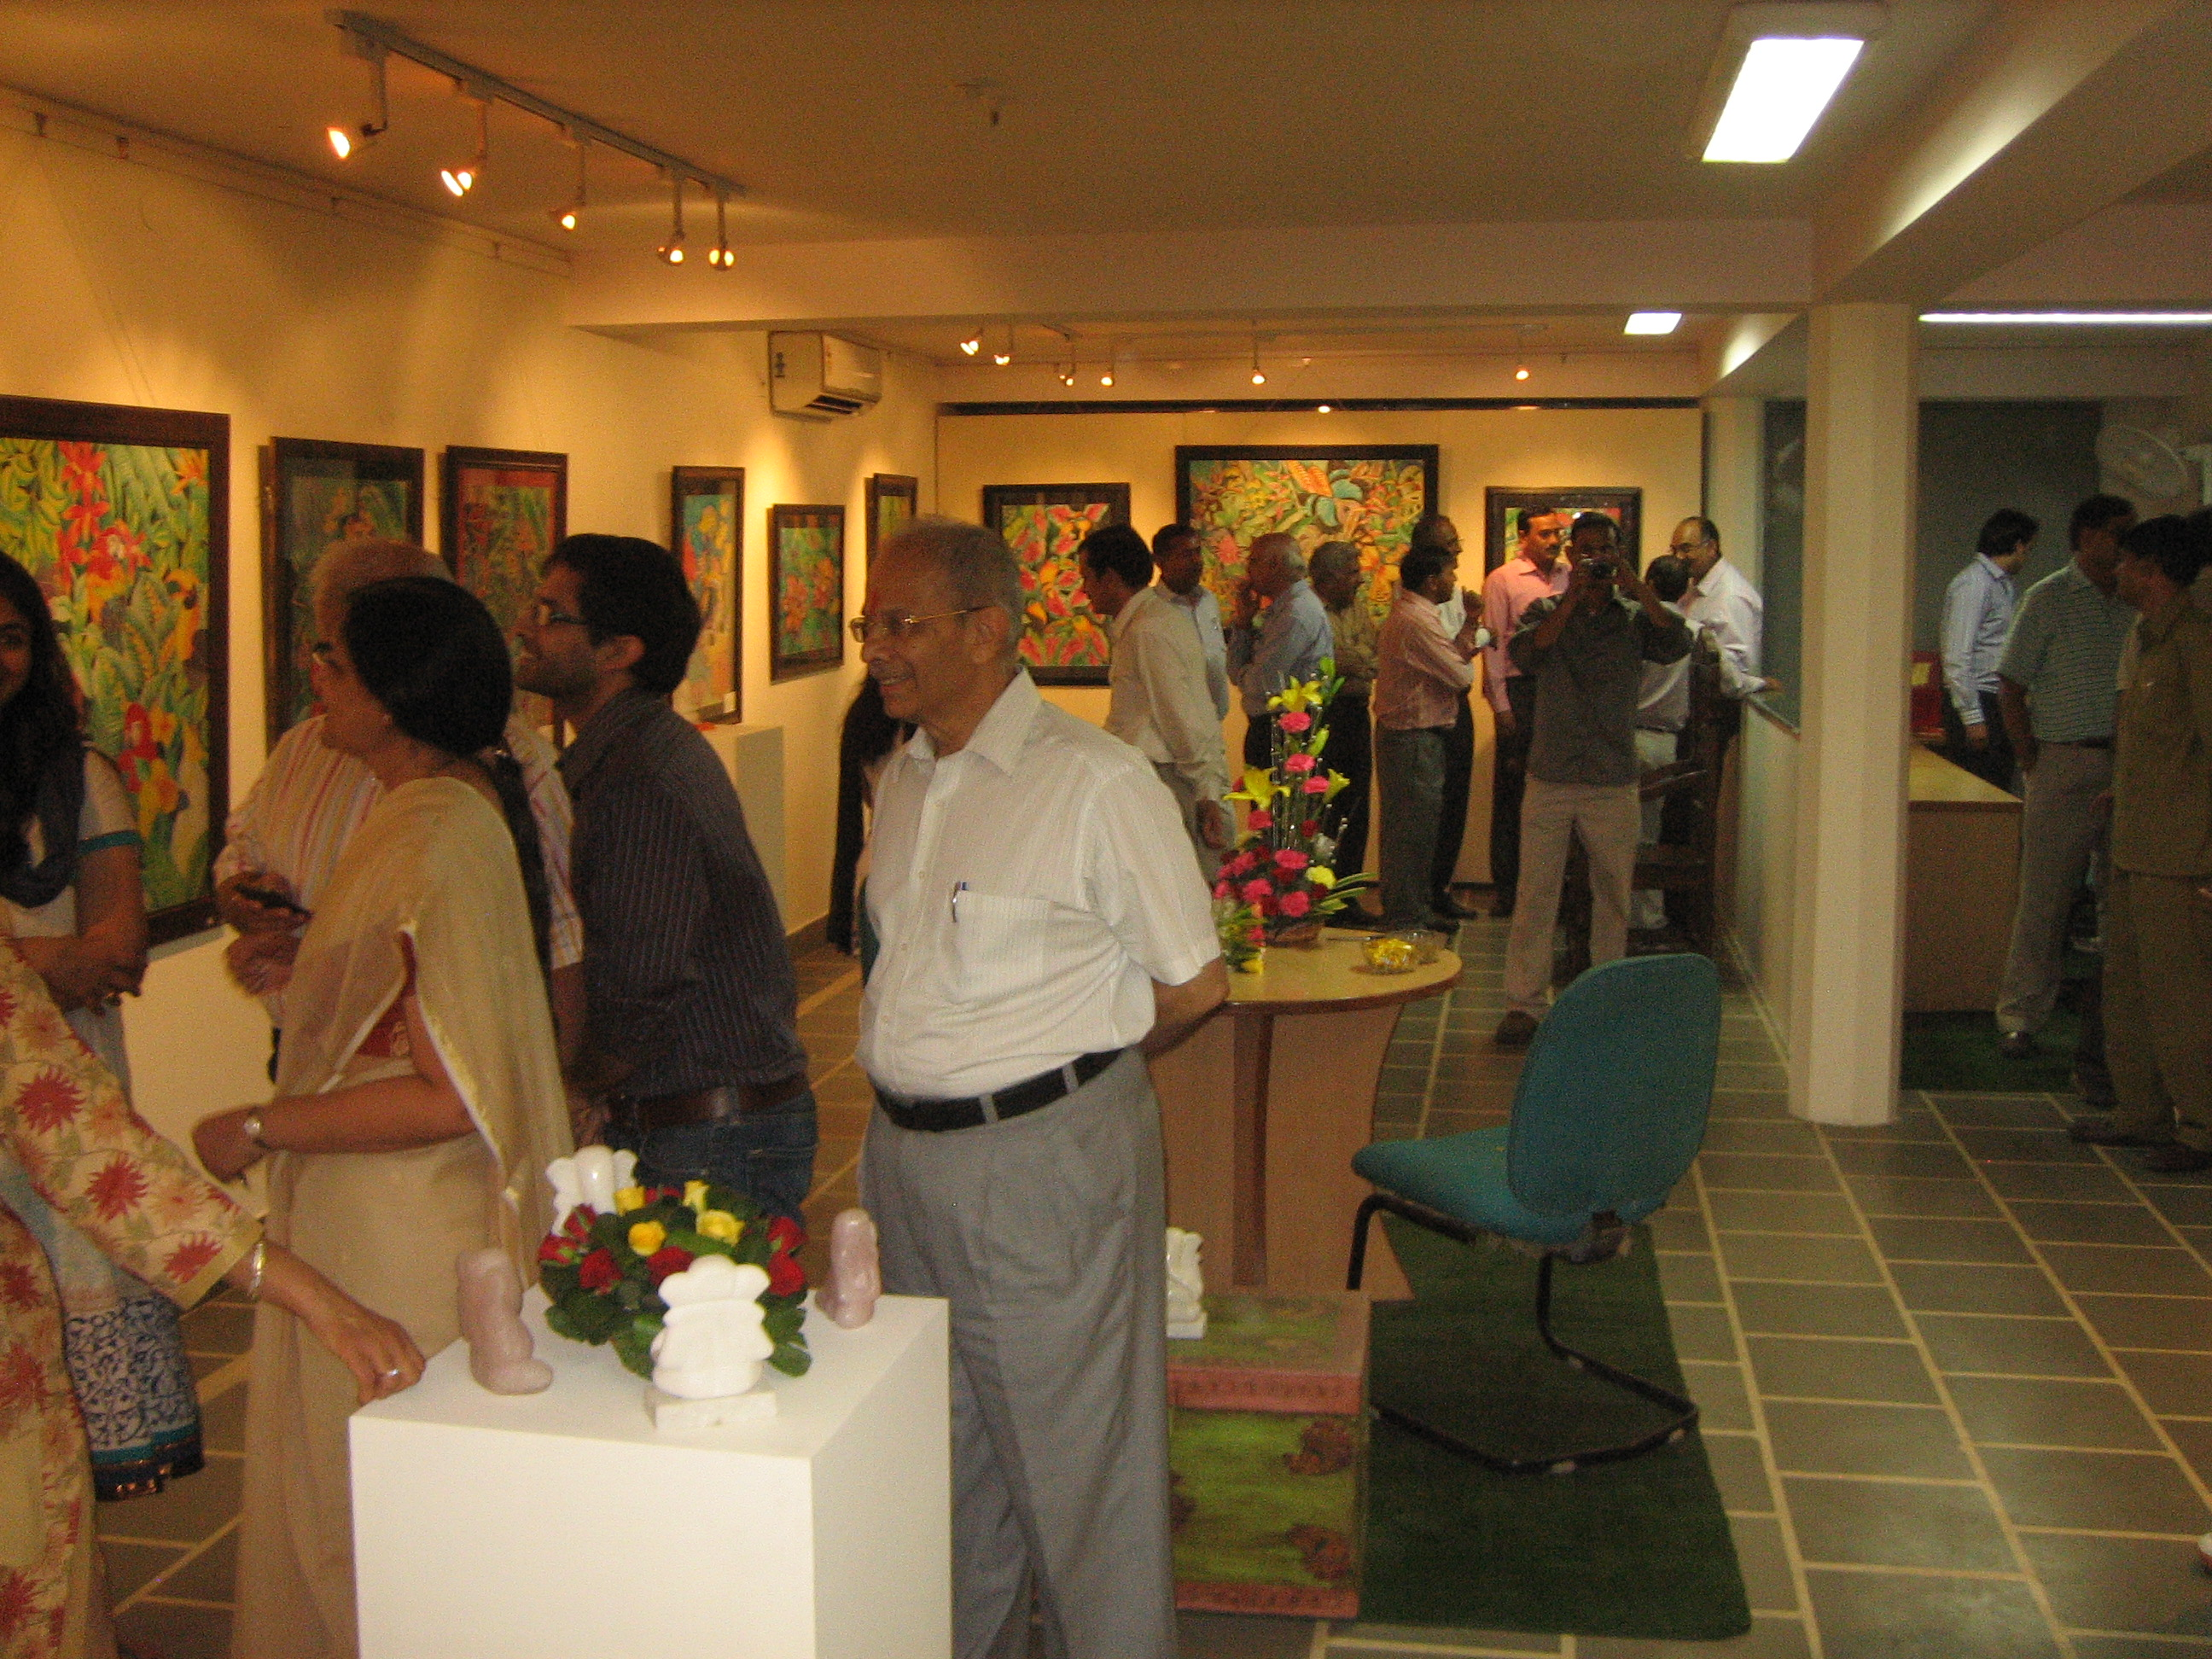 Exhibition at Durlabhji Art Gallery Jaipur